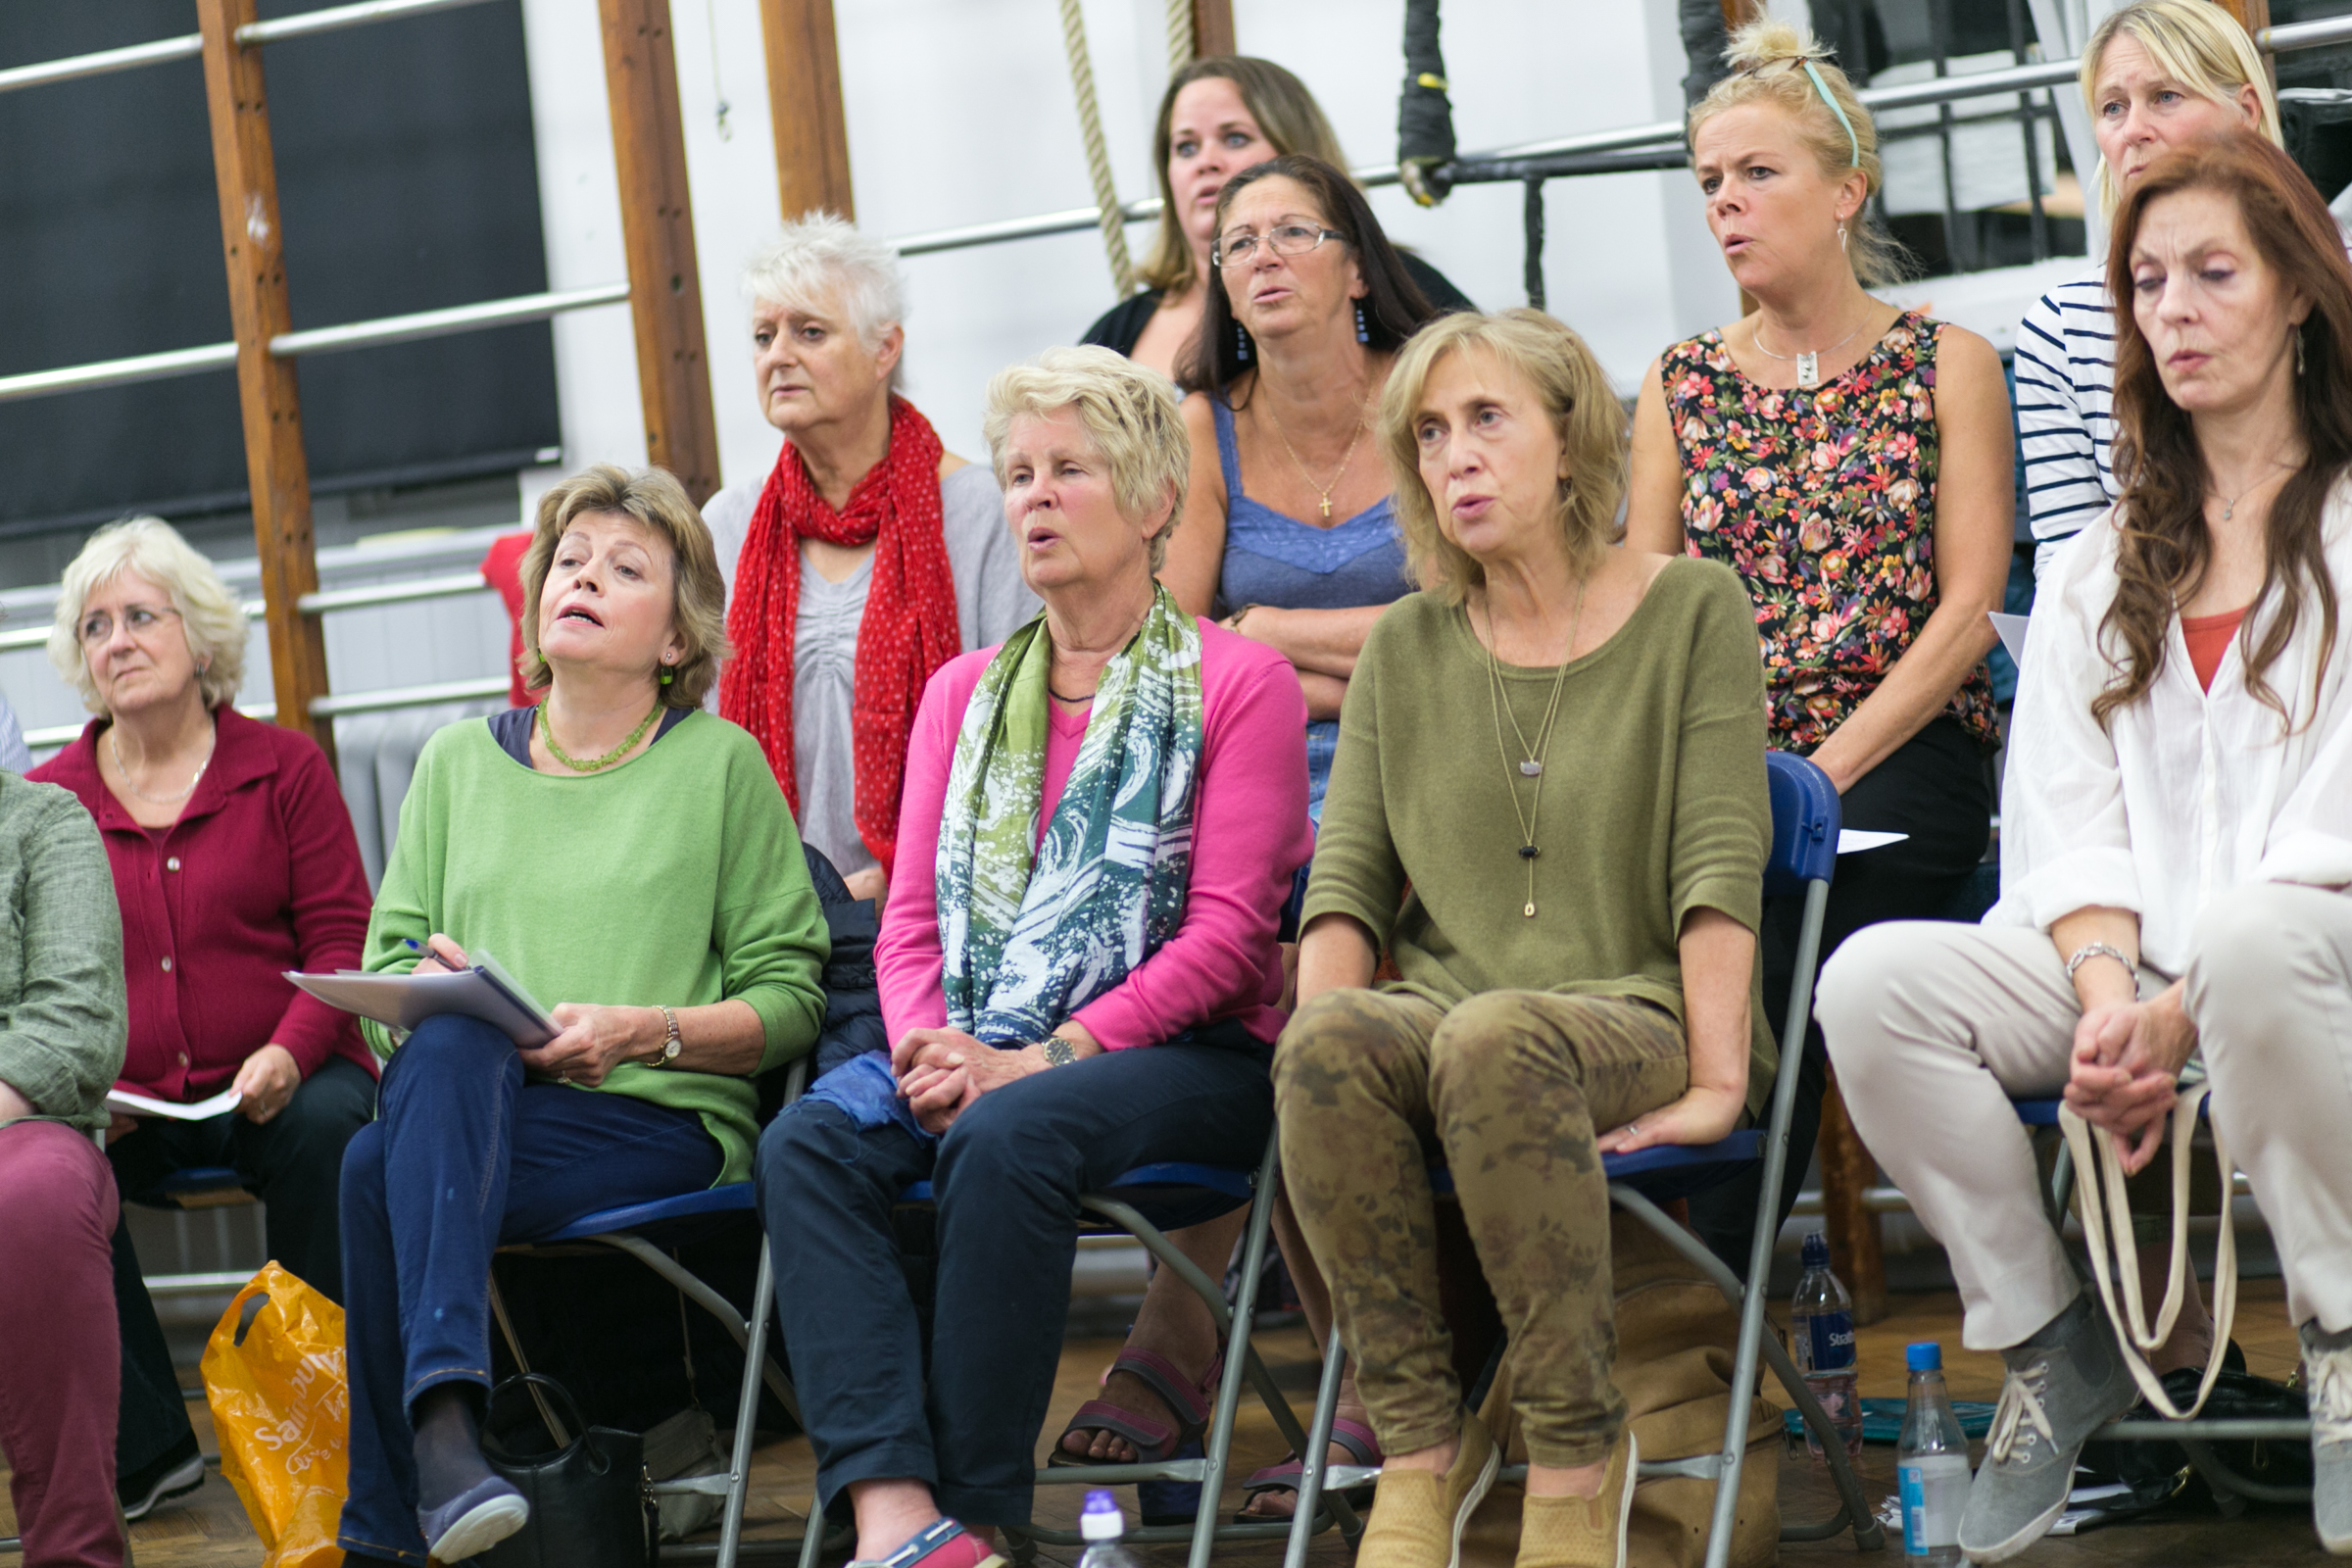 Barnes Community Choir is a lively and welcoming choir for singers of all ages, backgrounds and abilities.